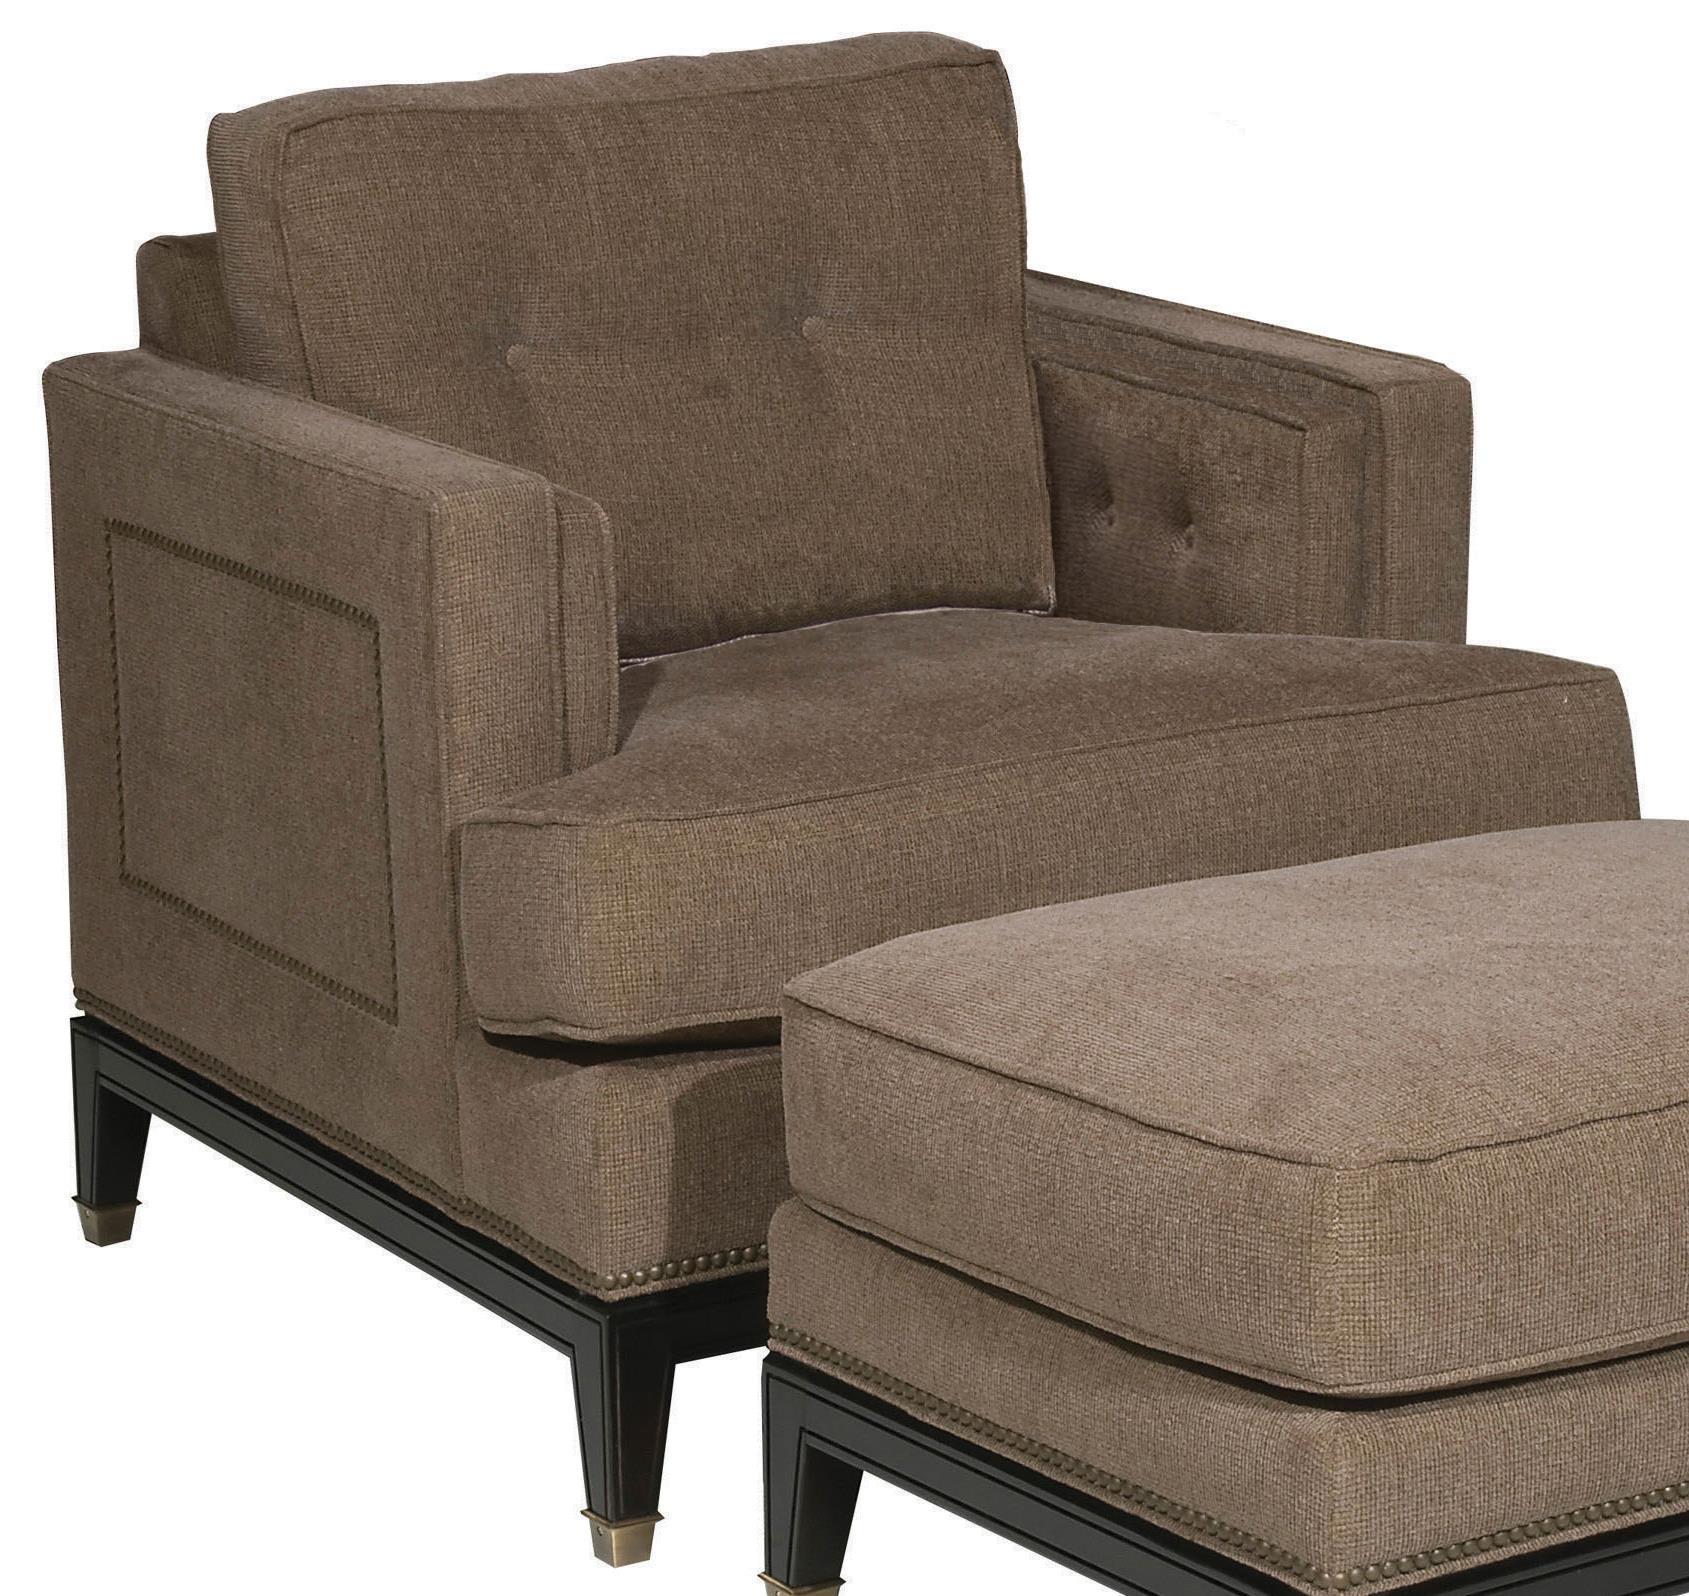 Accent Chairs Whitaker Upholstered Chair by Vanguard Furniture at Sprintz Furniture